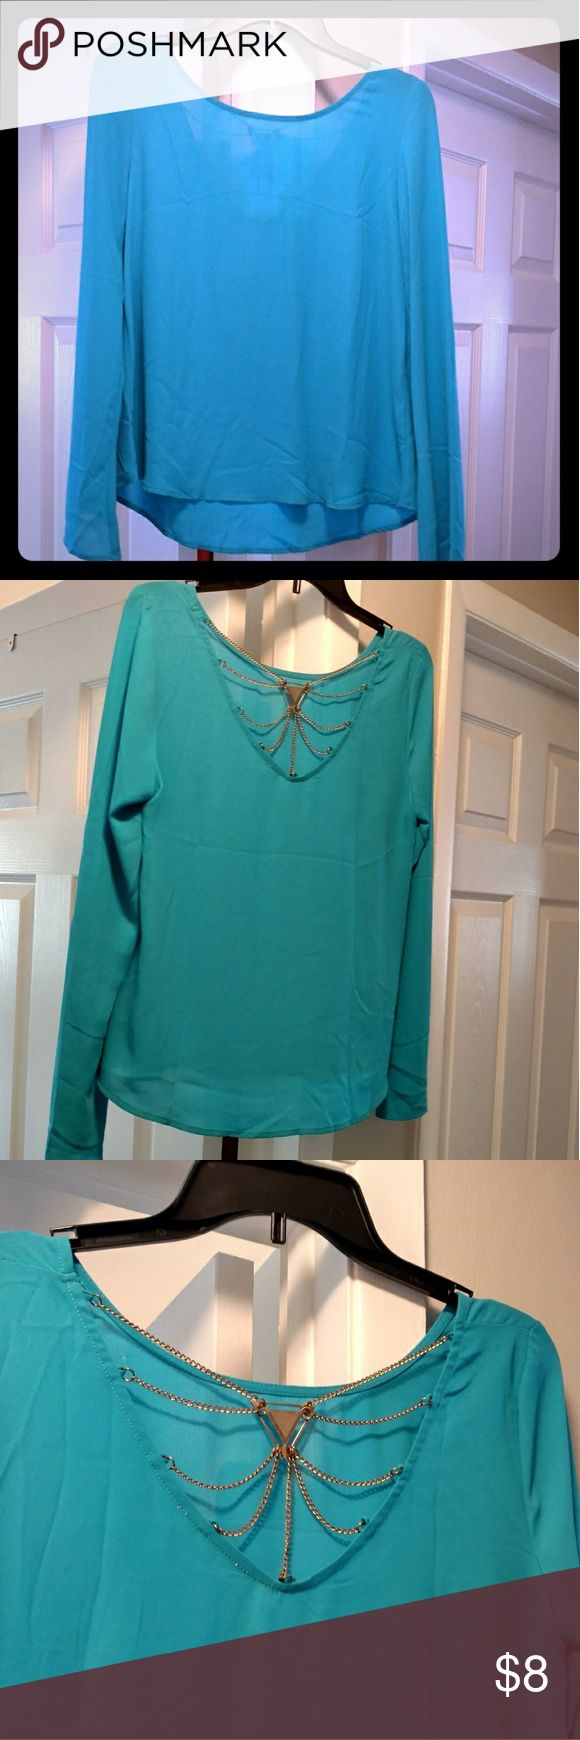 Beautiful teal blouse with chain detail on back Worn once size large beautiful flow teal blouse . Perfect condition mine Tops